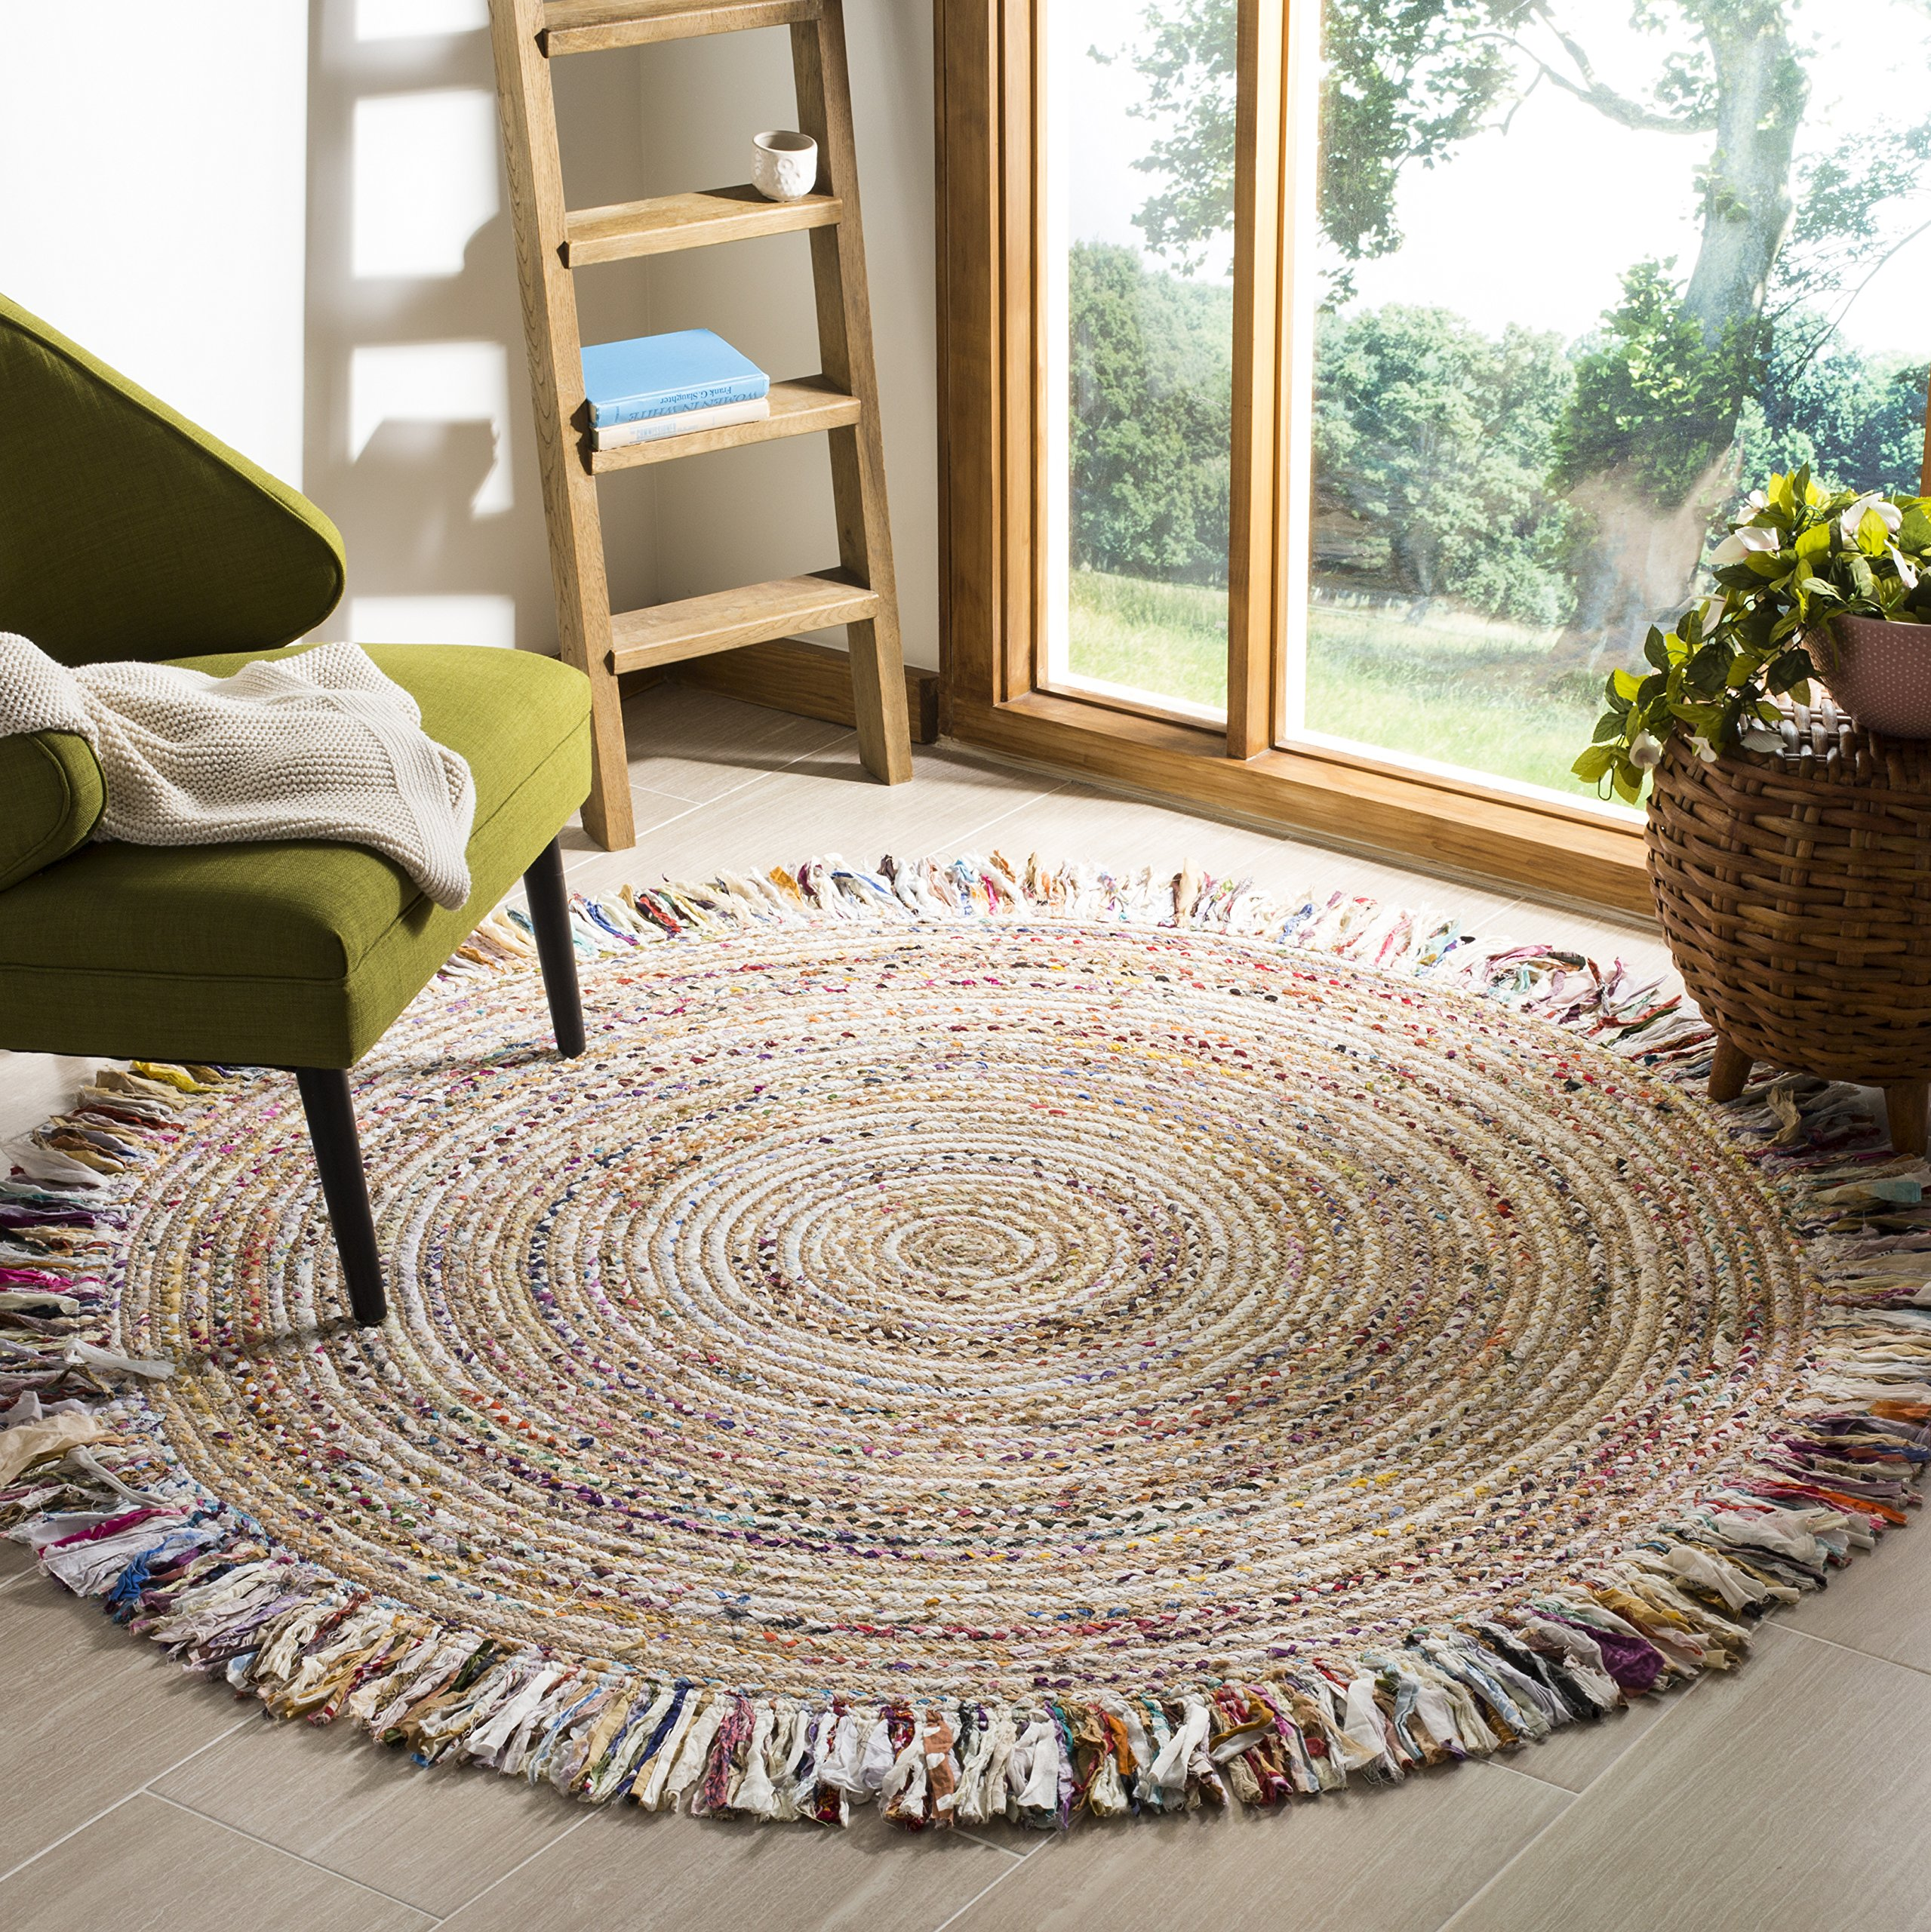 Safavieh CAP206B-4R Cape Cod Collection Ivory and Light Beige Cotton Round Area Rug, 4' Diameter